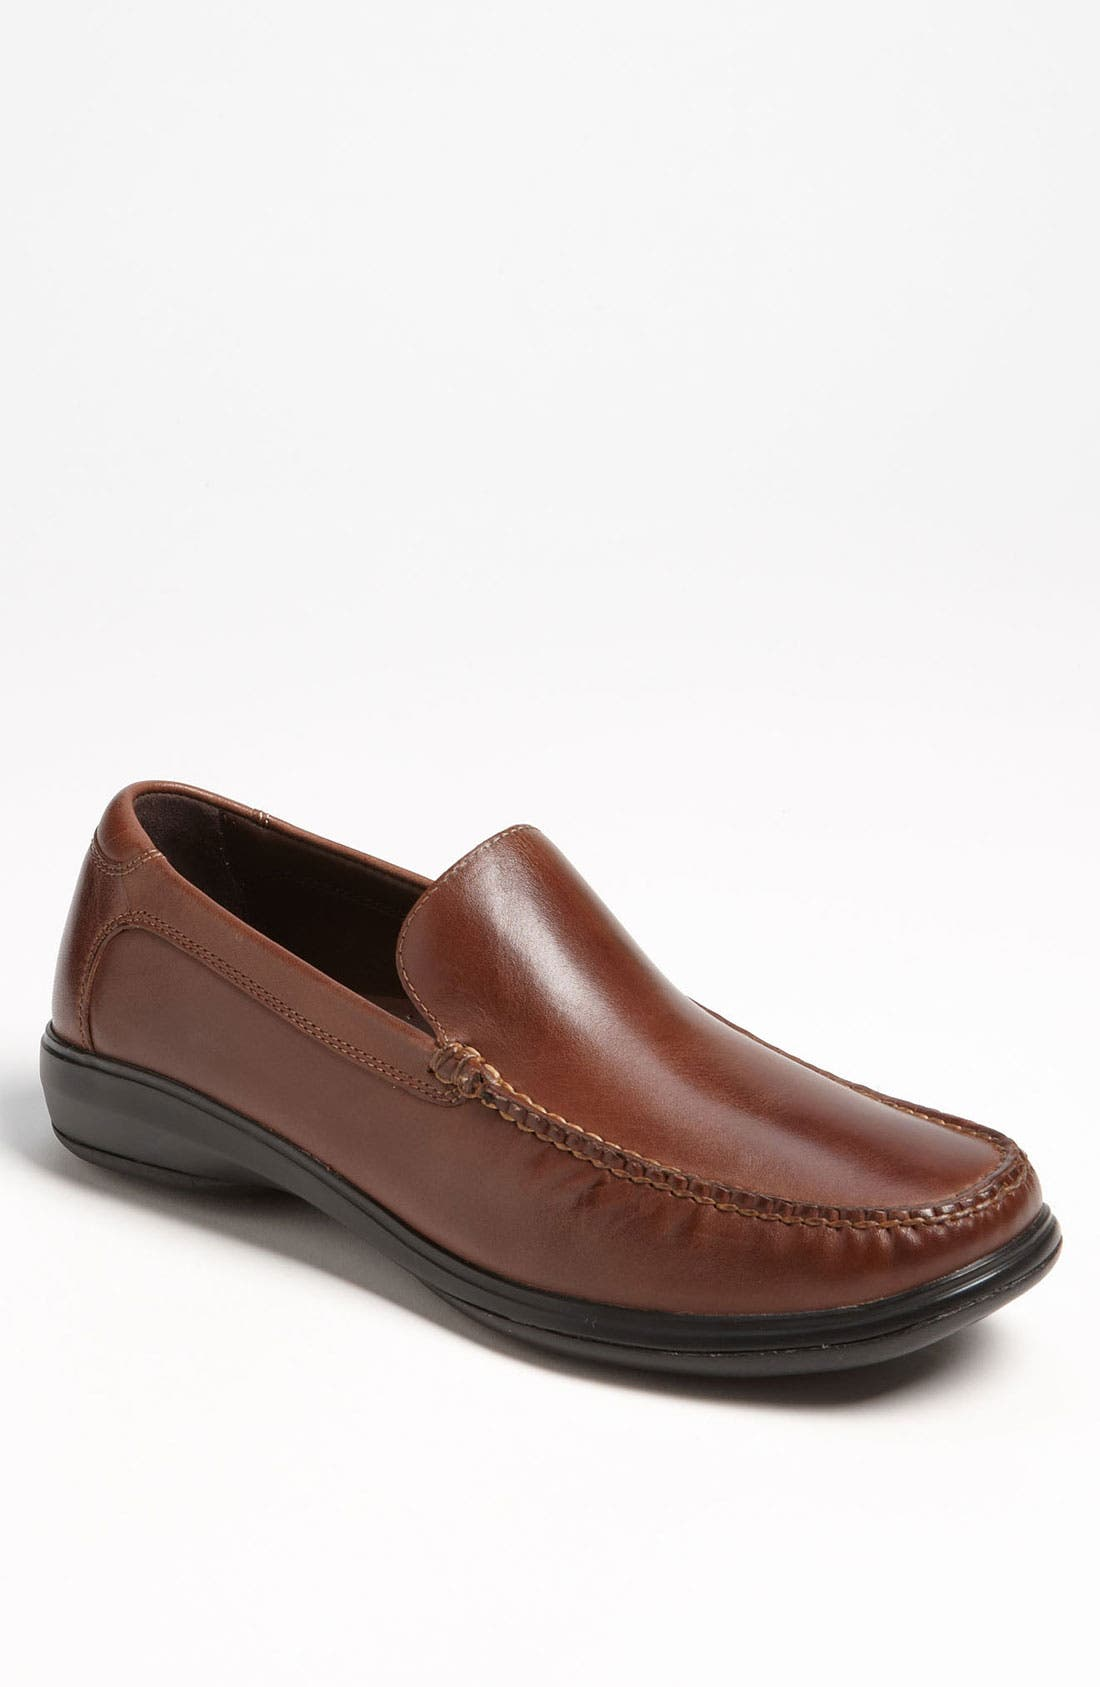 Alternate Image 1 Selected - COLE HAAN AIR KEATING VENETIAN